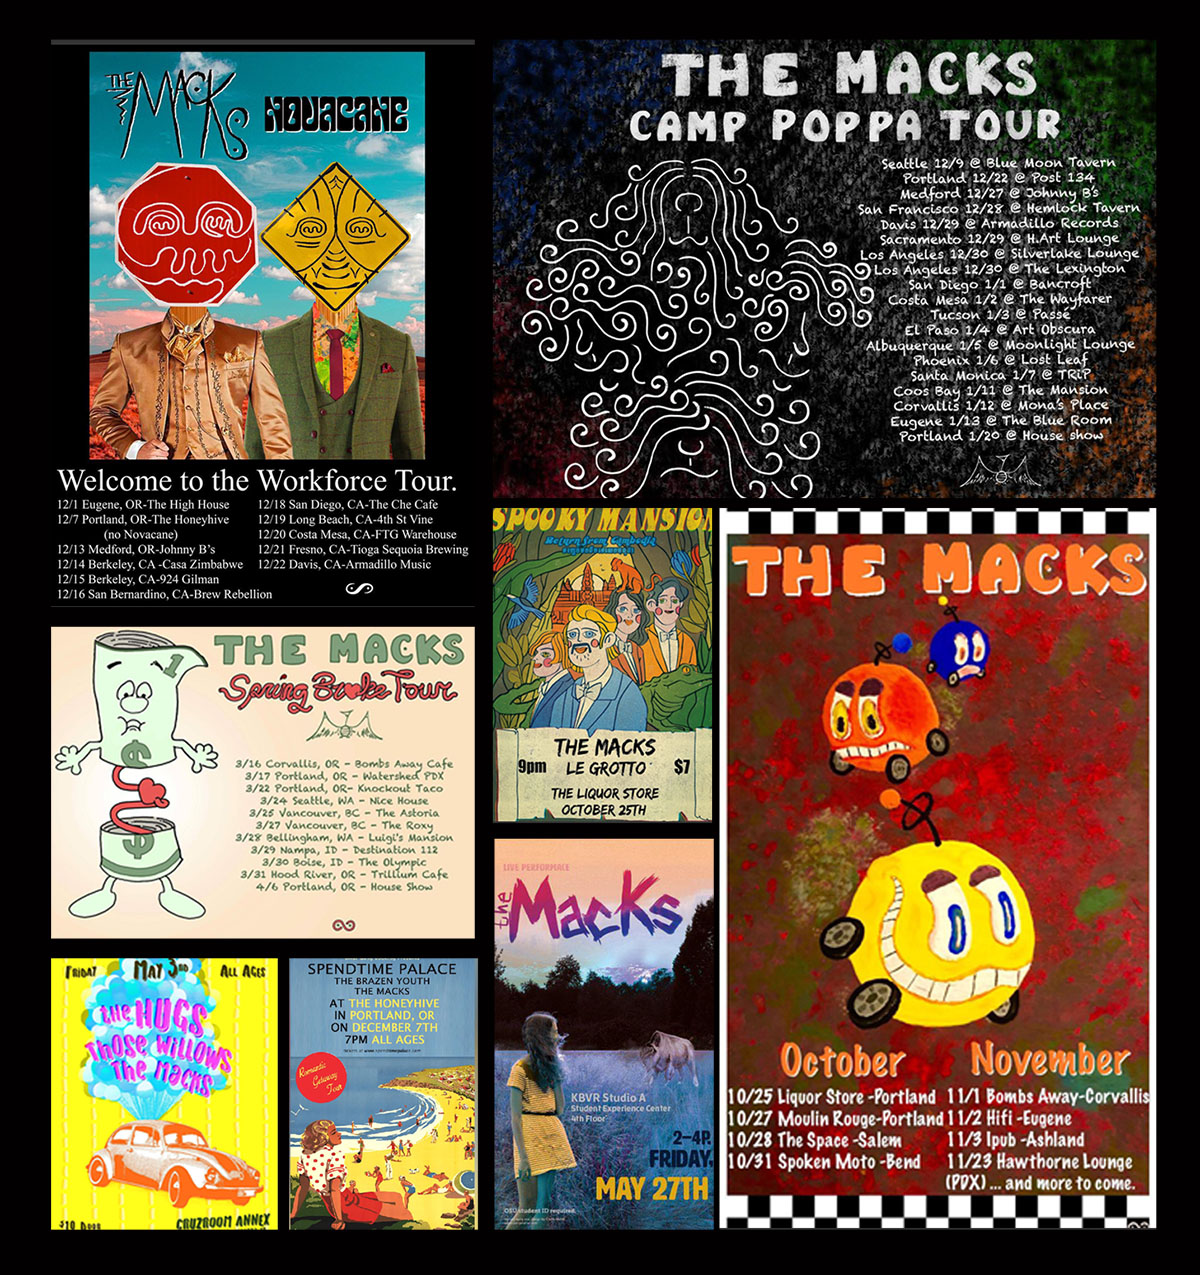 The Macks on tour poster collage